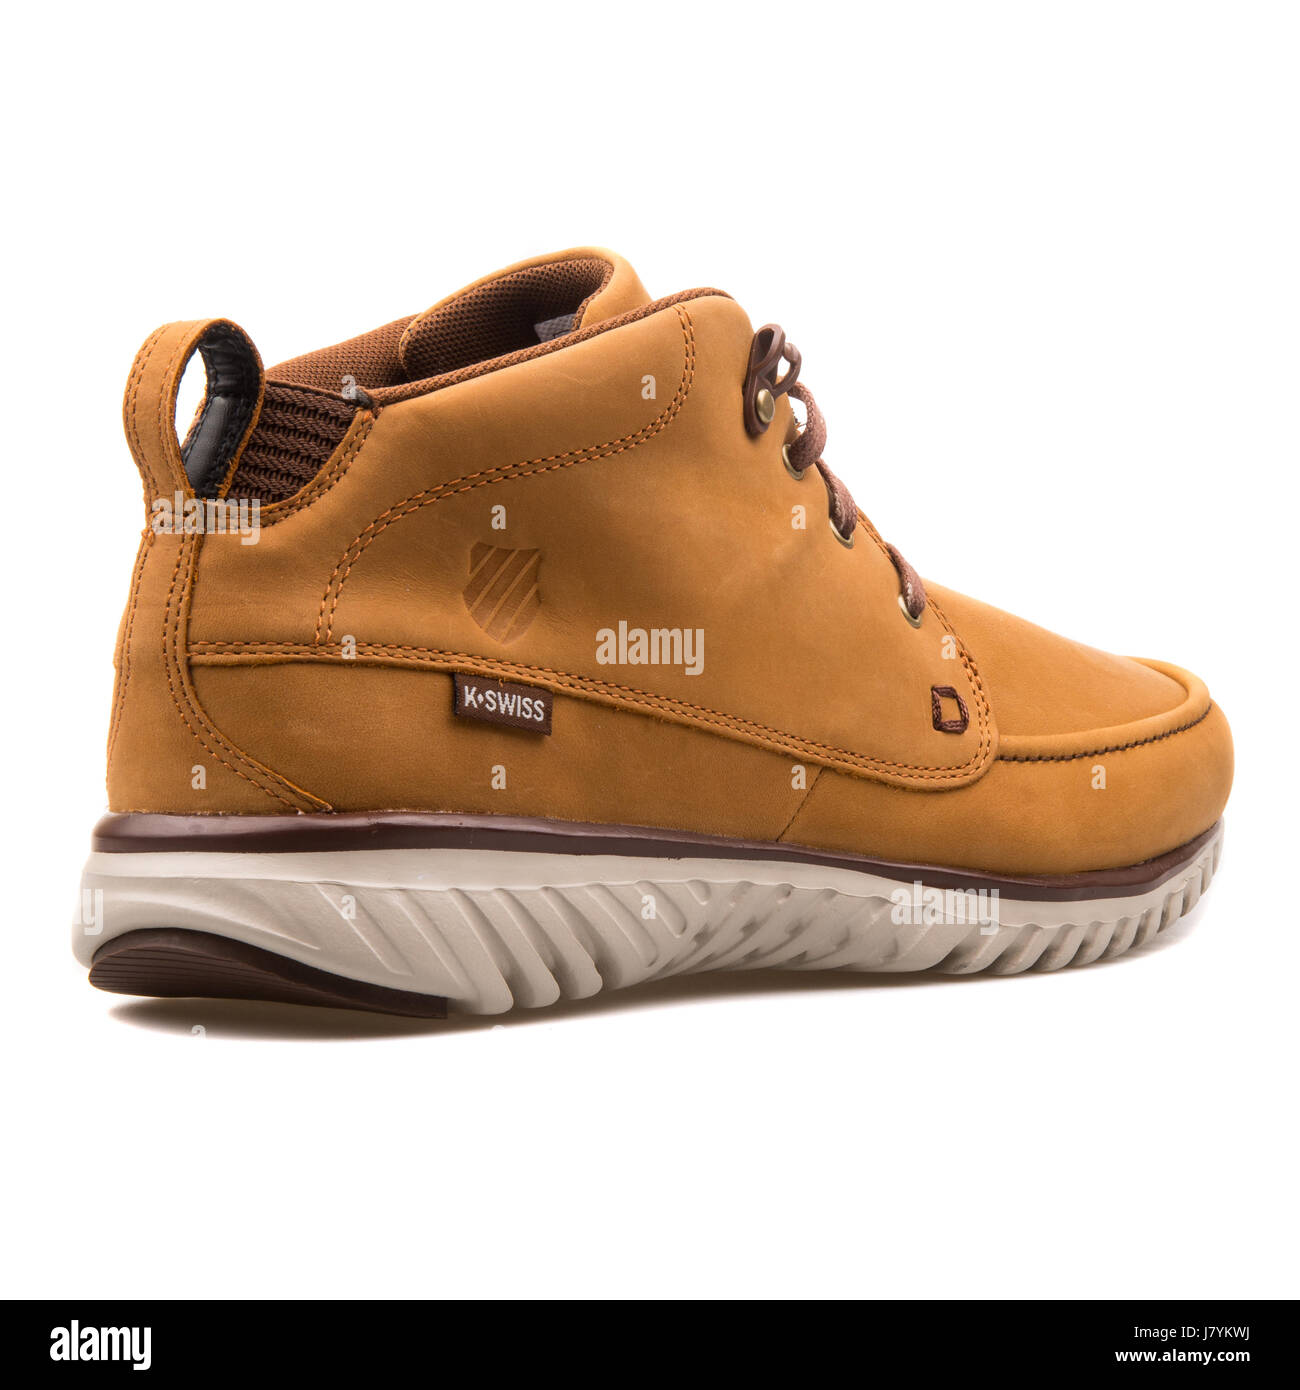 Wheat Shoes - 02722-271-M Stock Photo